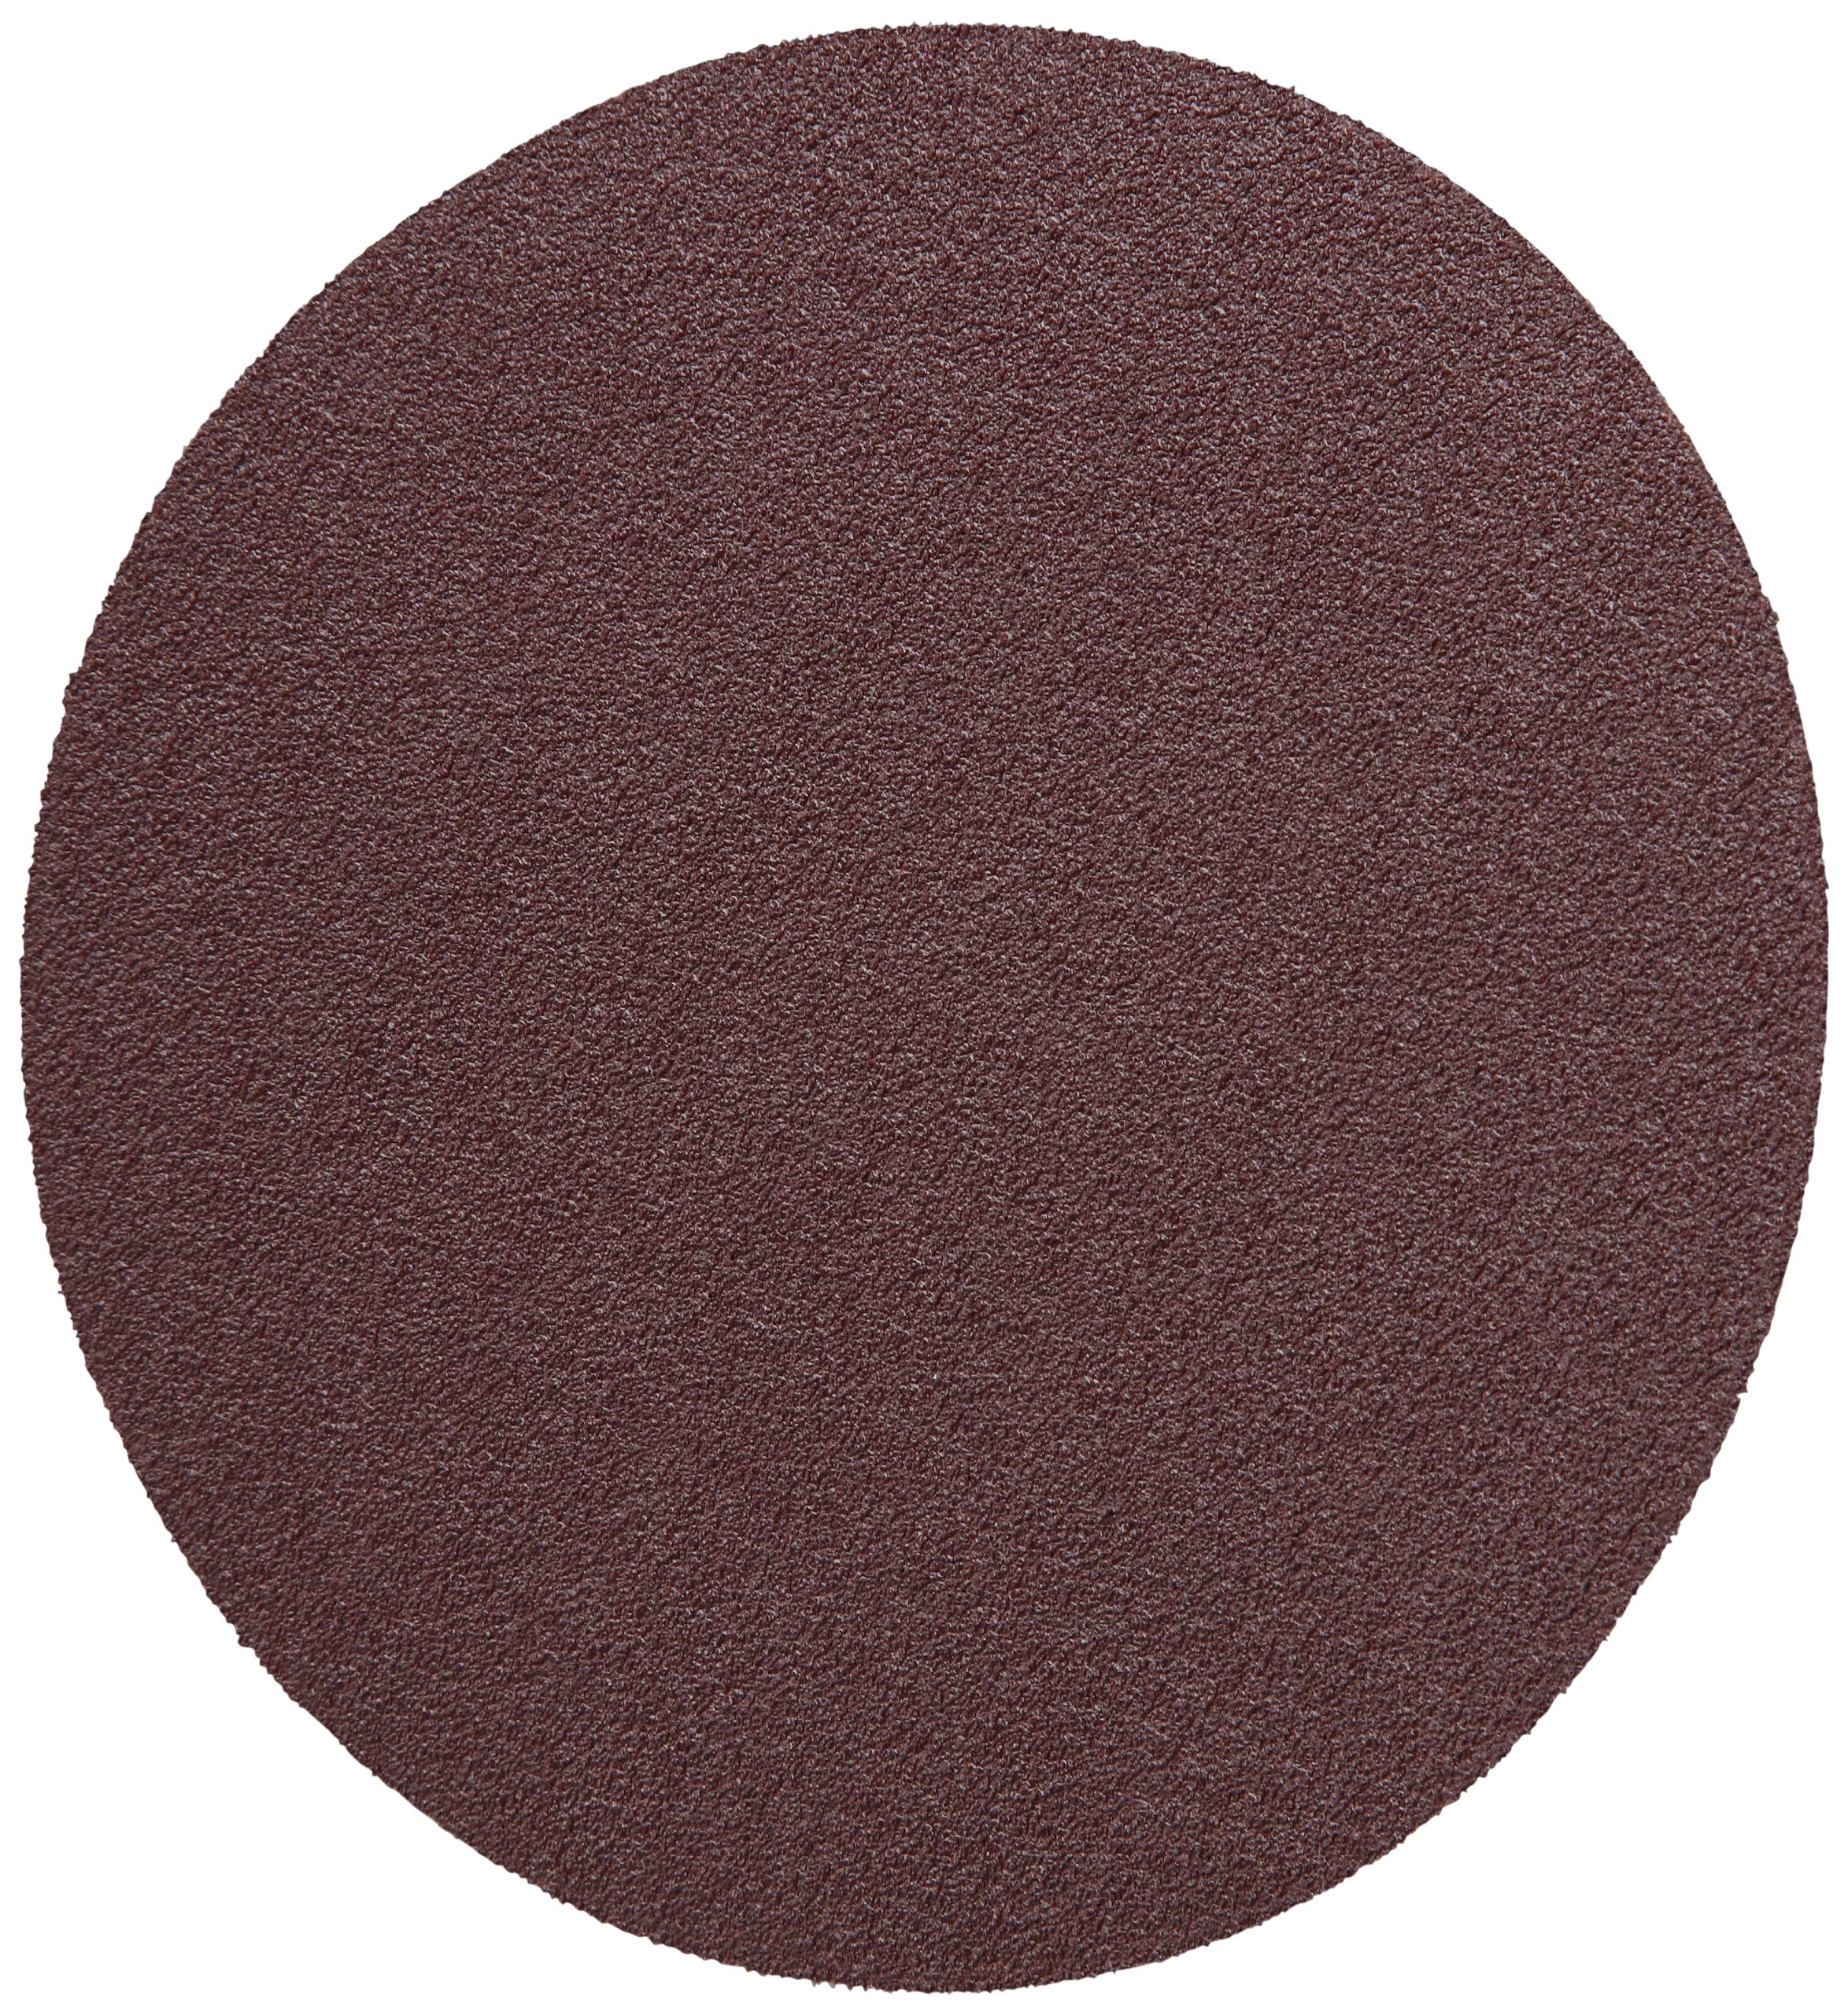 3M(TM) PSA Cloth Disc 348D, X-Weight, Aluminum Oxide, 24'' Diameter, 80 Grit, Brown  (Pack of 10)